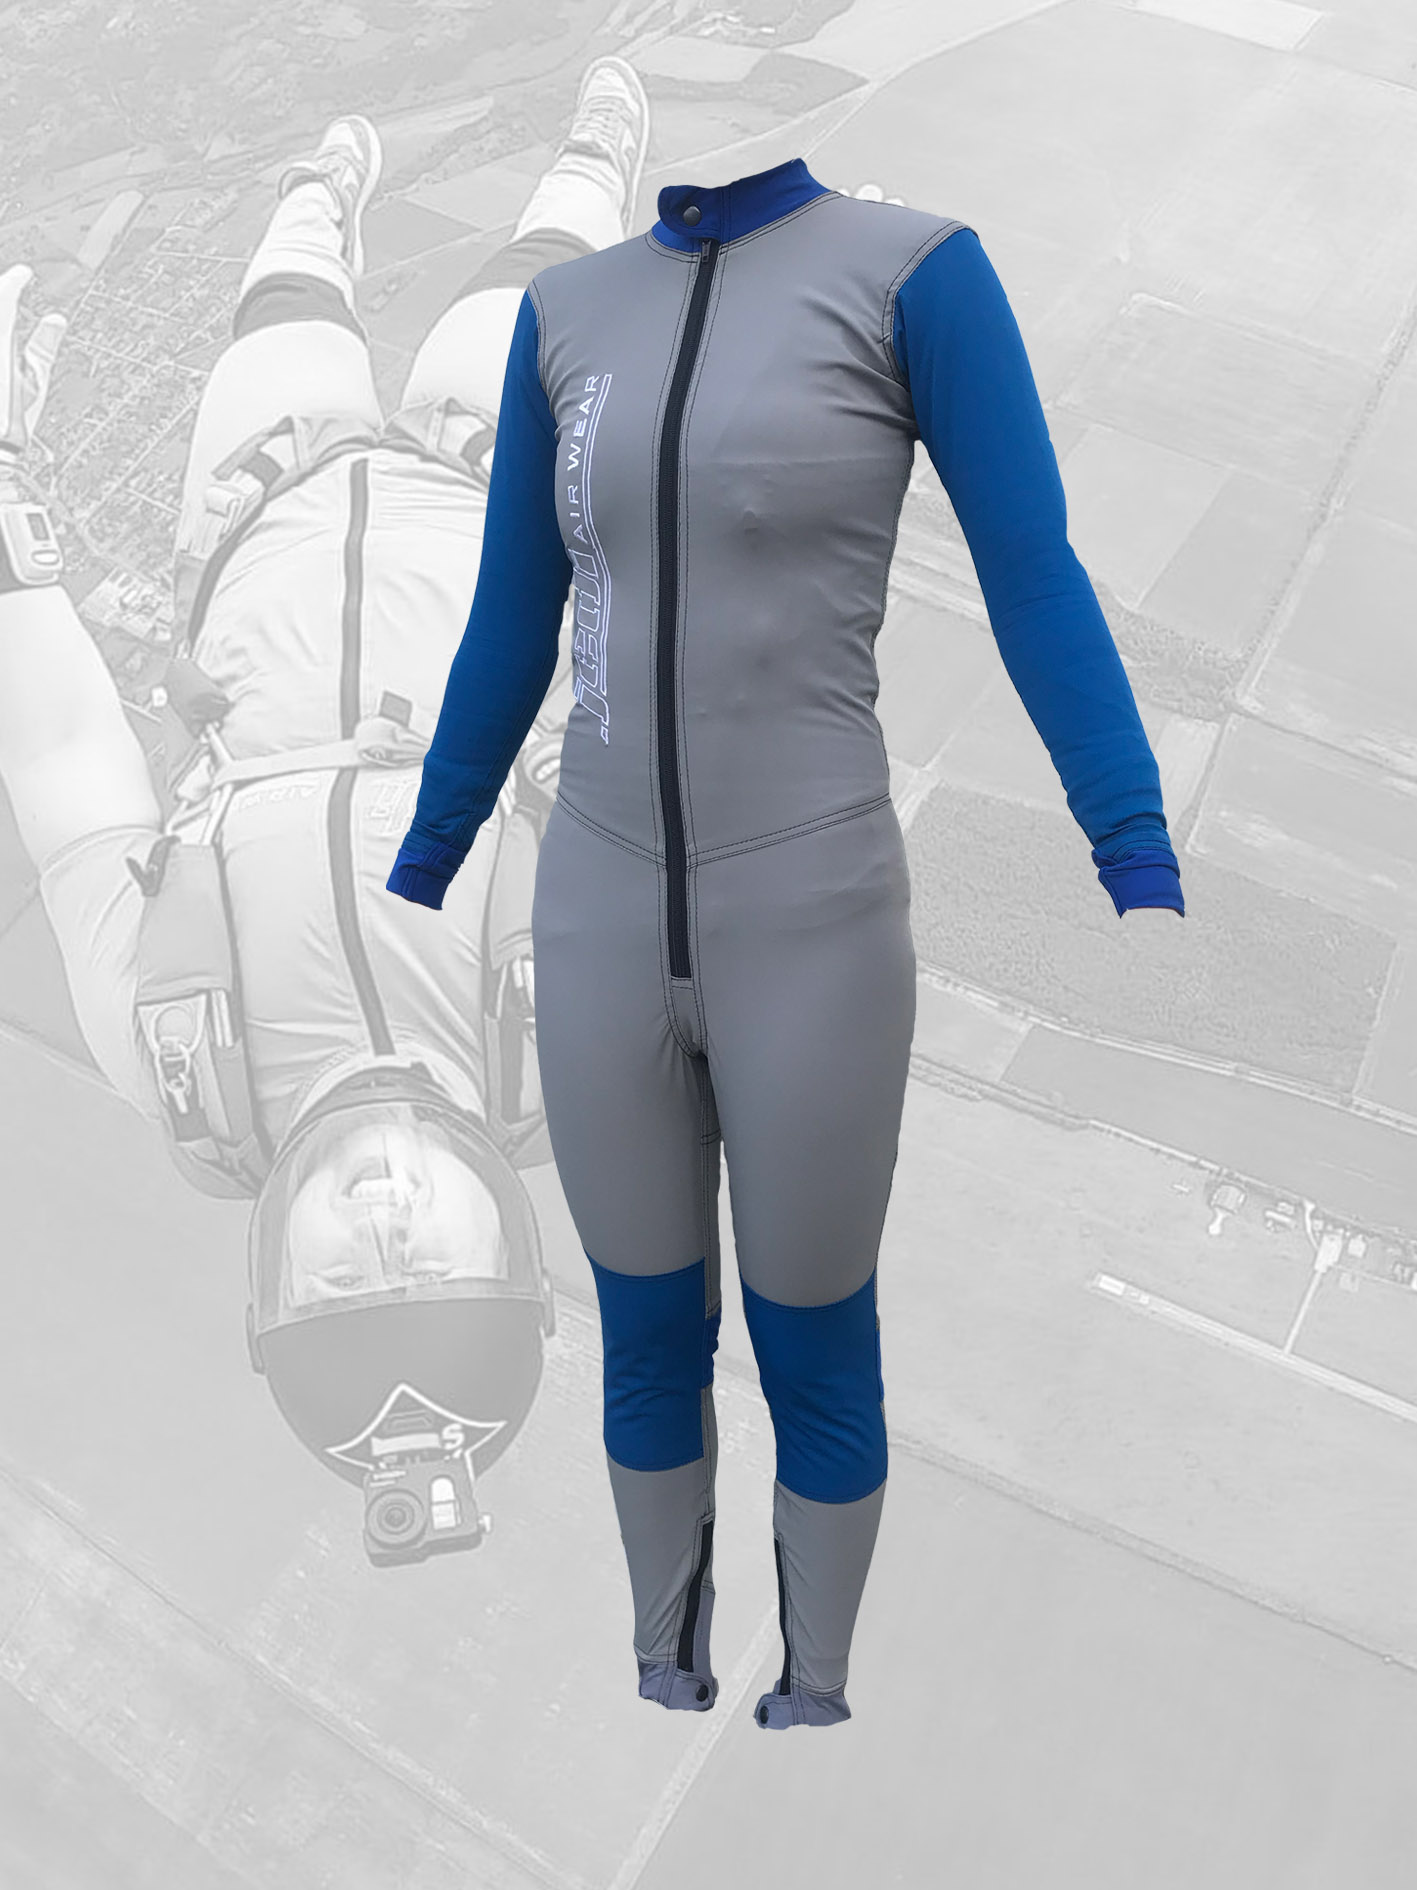 Dynamic skydiving suit